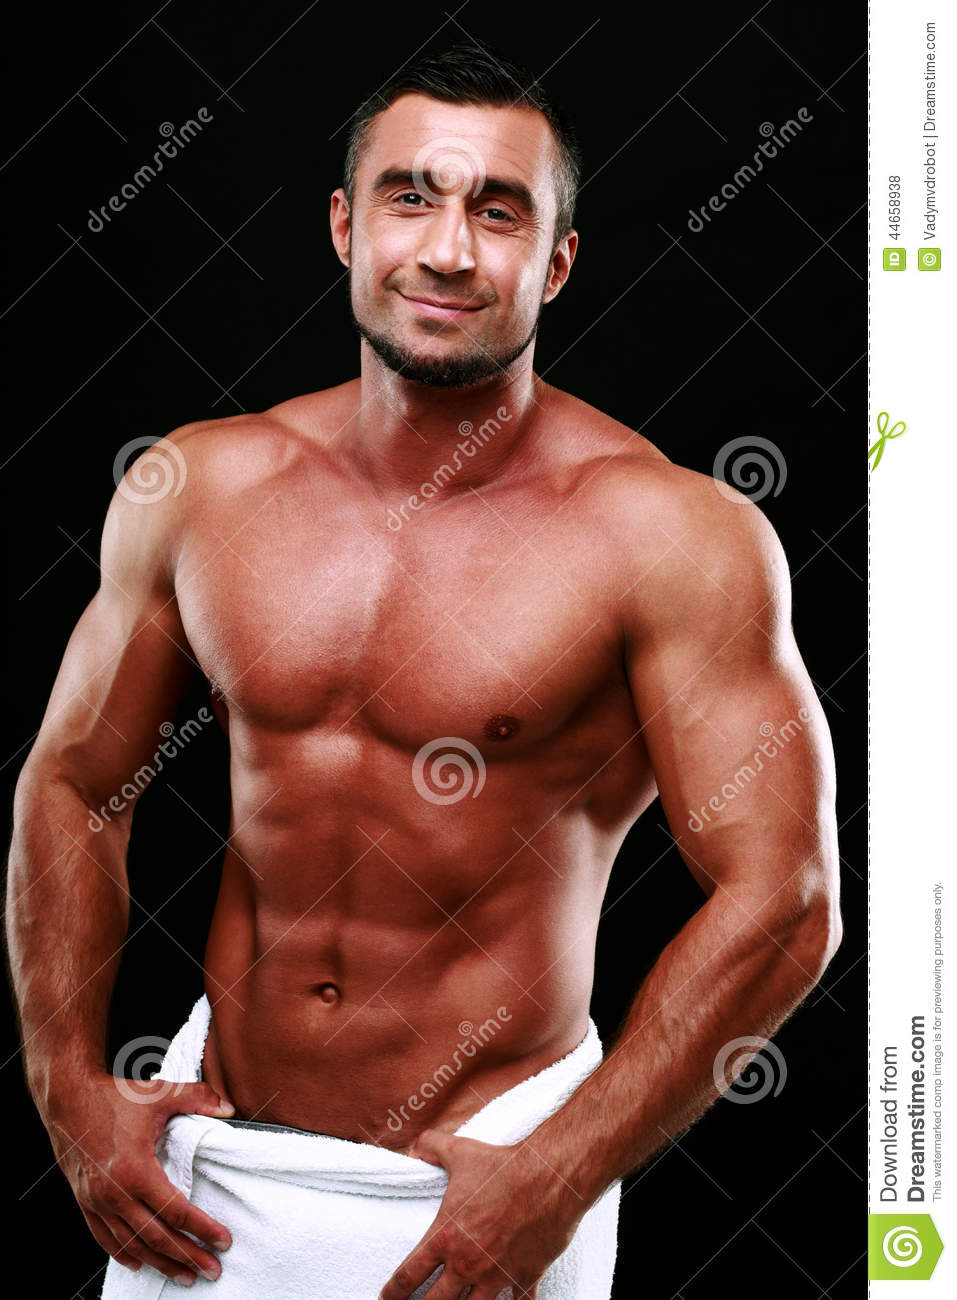 Portrait Of A Smiling Muscular Man Stock Photo Image Of